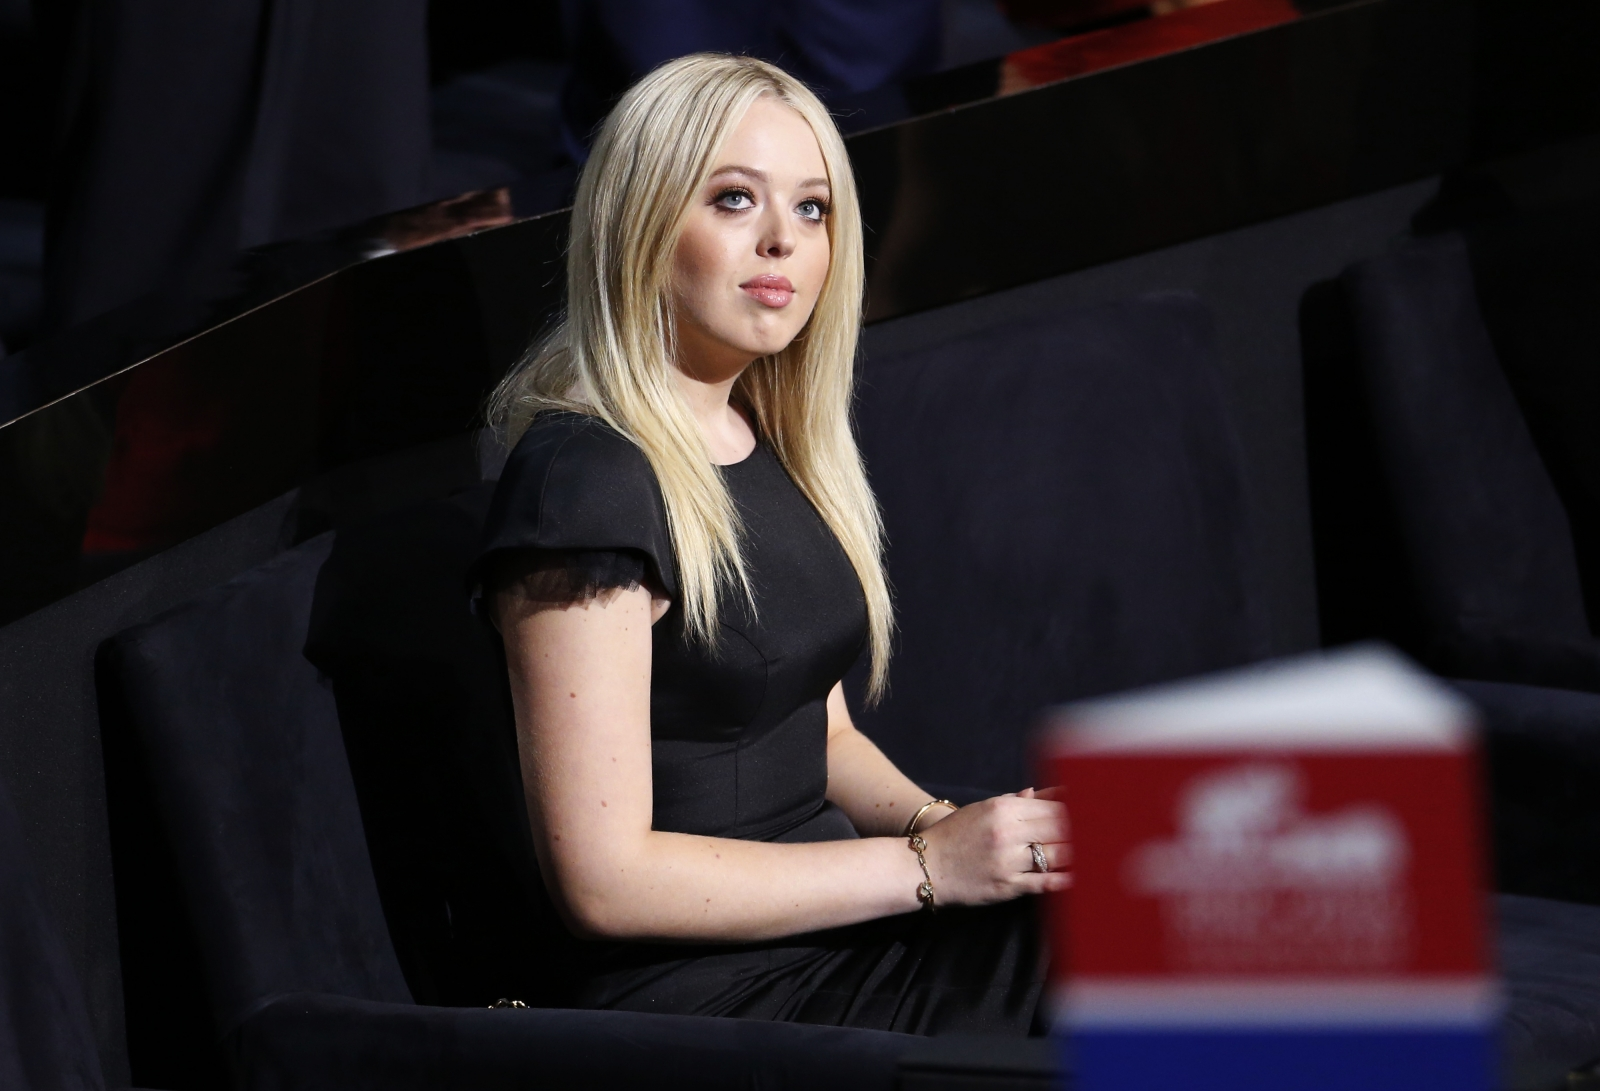 Tiffany Trump Hot Pictures, Bikini Images Collection